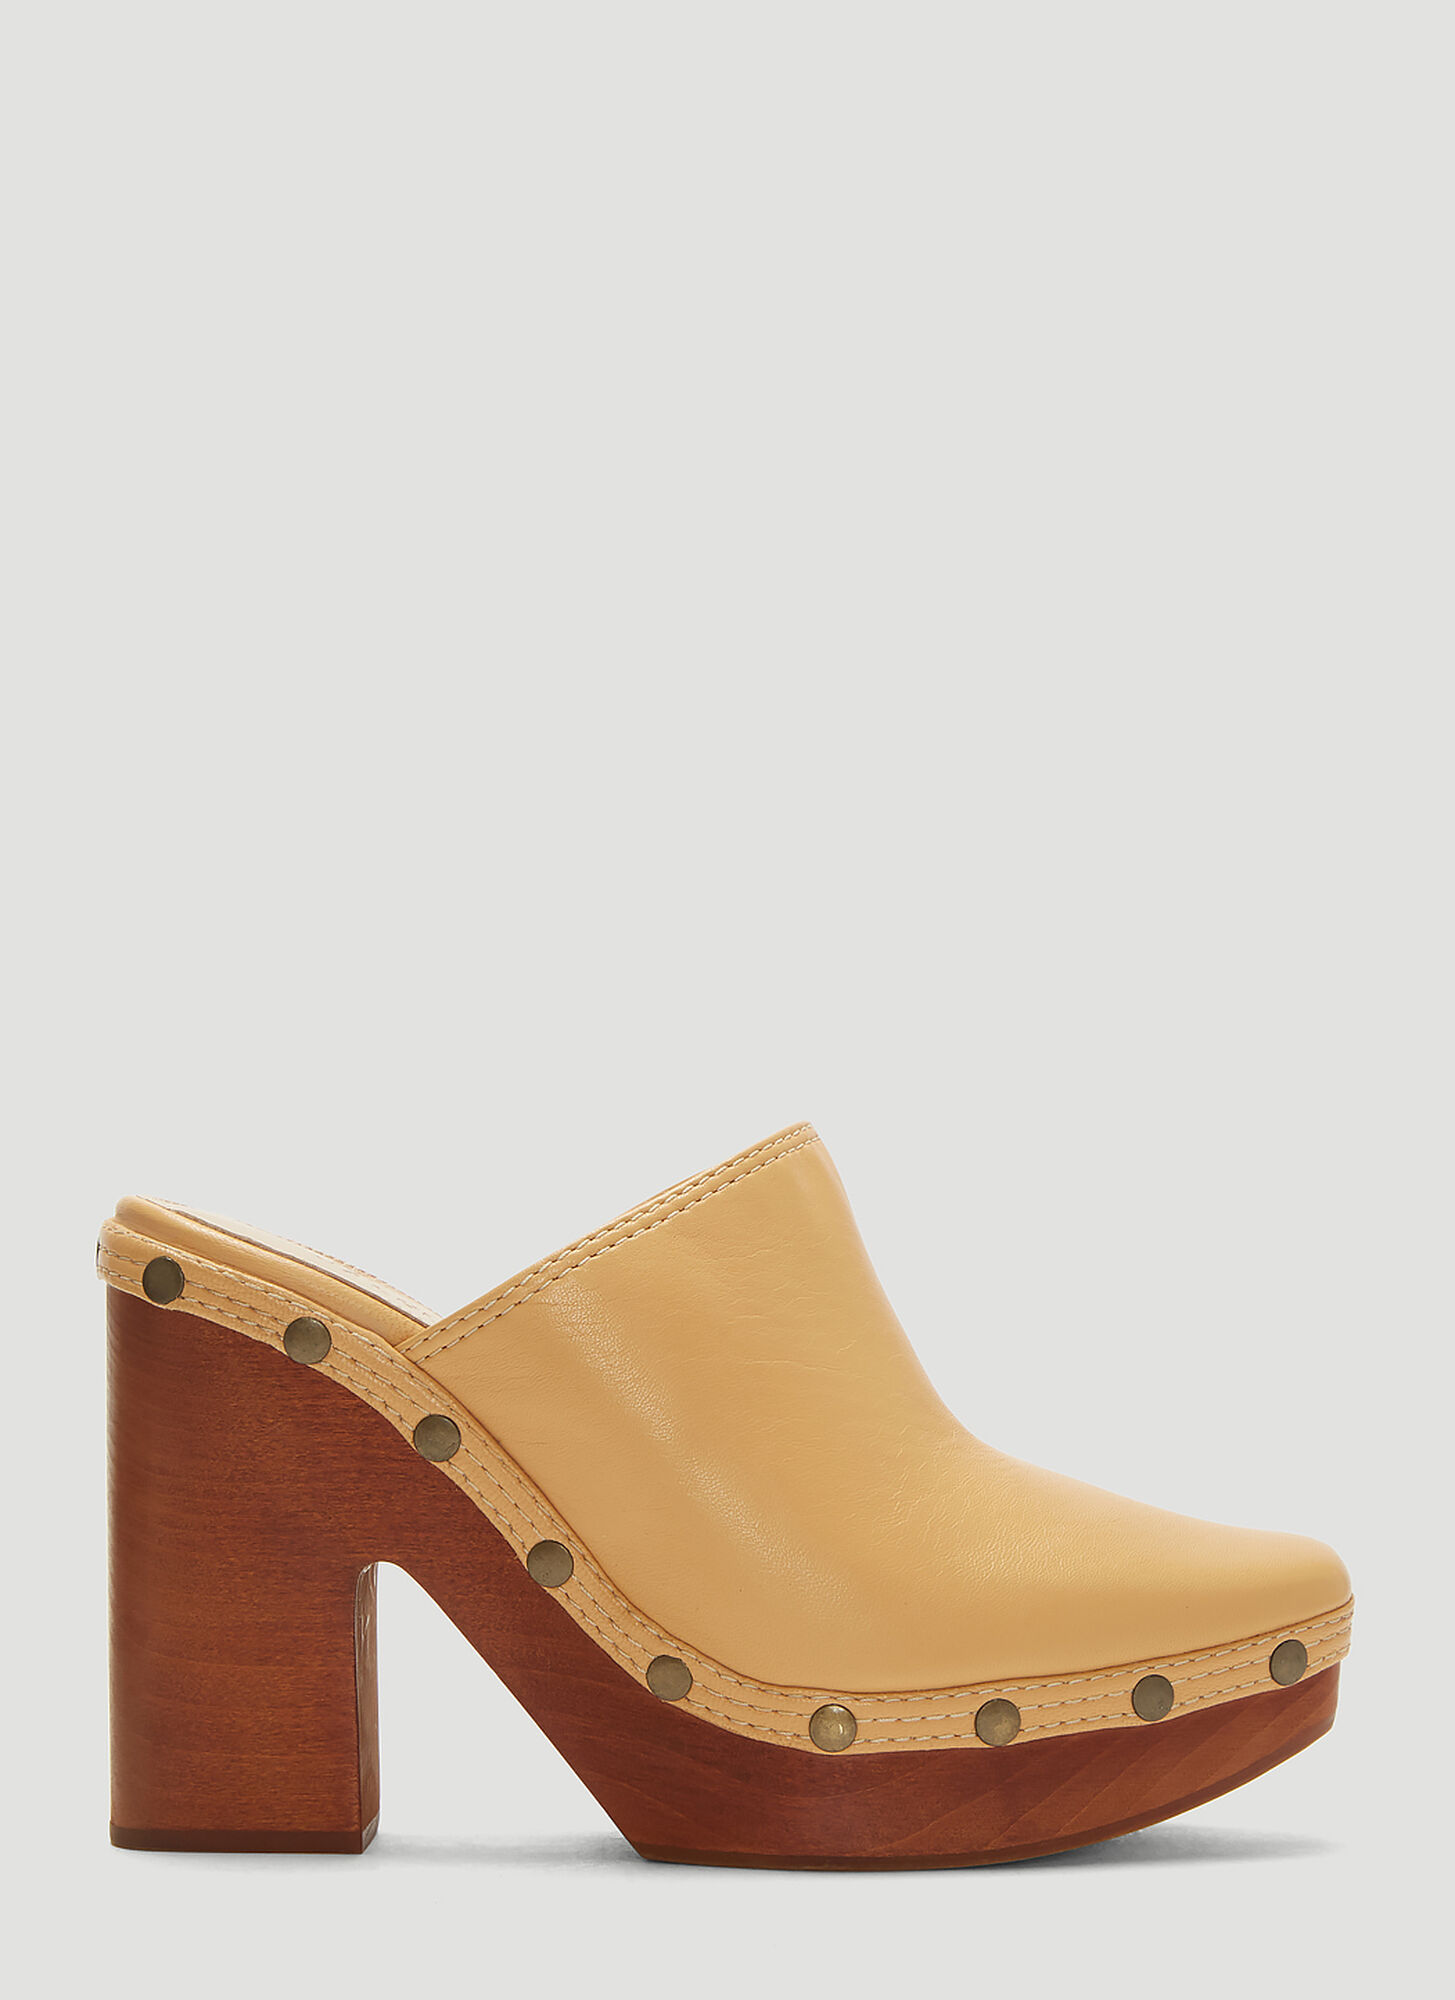 Jacquemus Les Sabots Mules in Brown